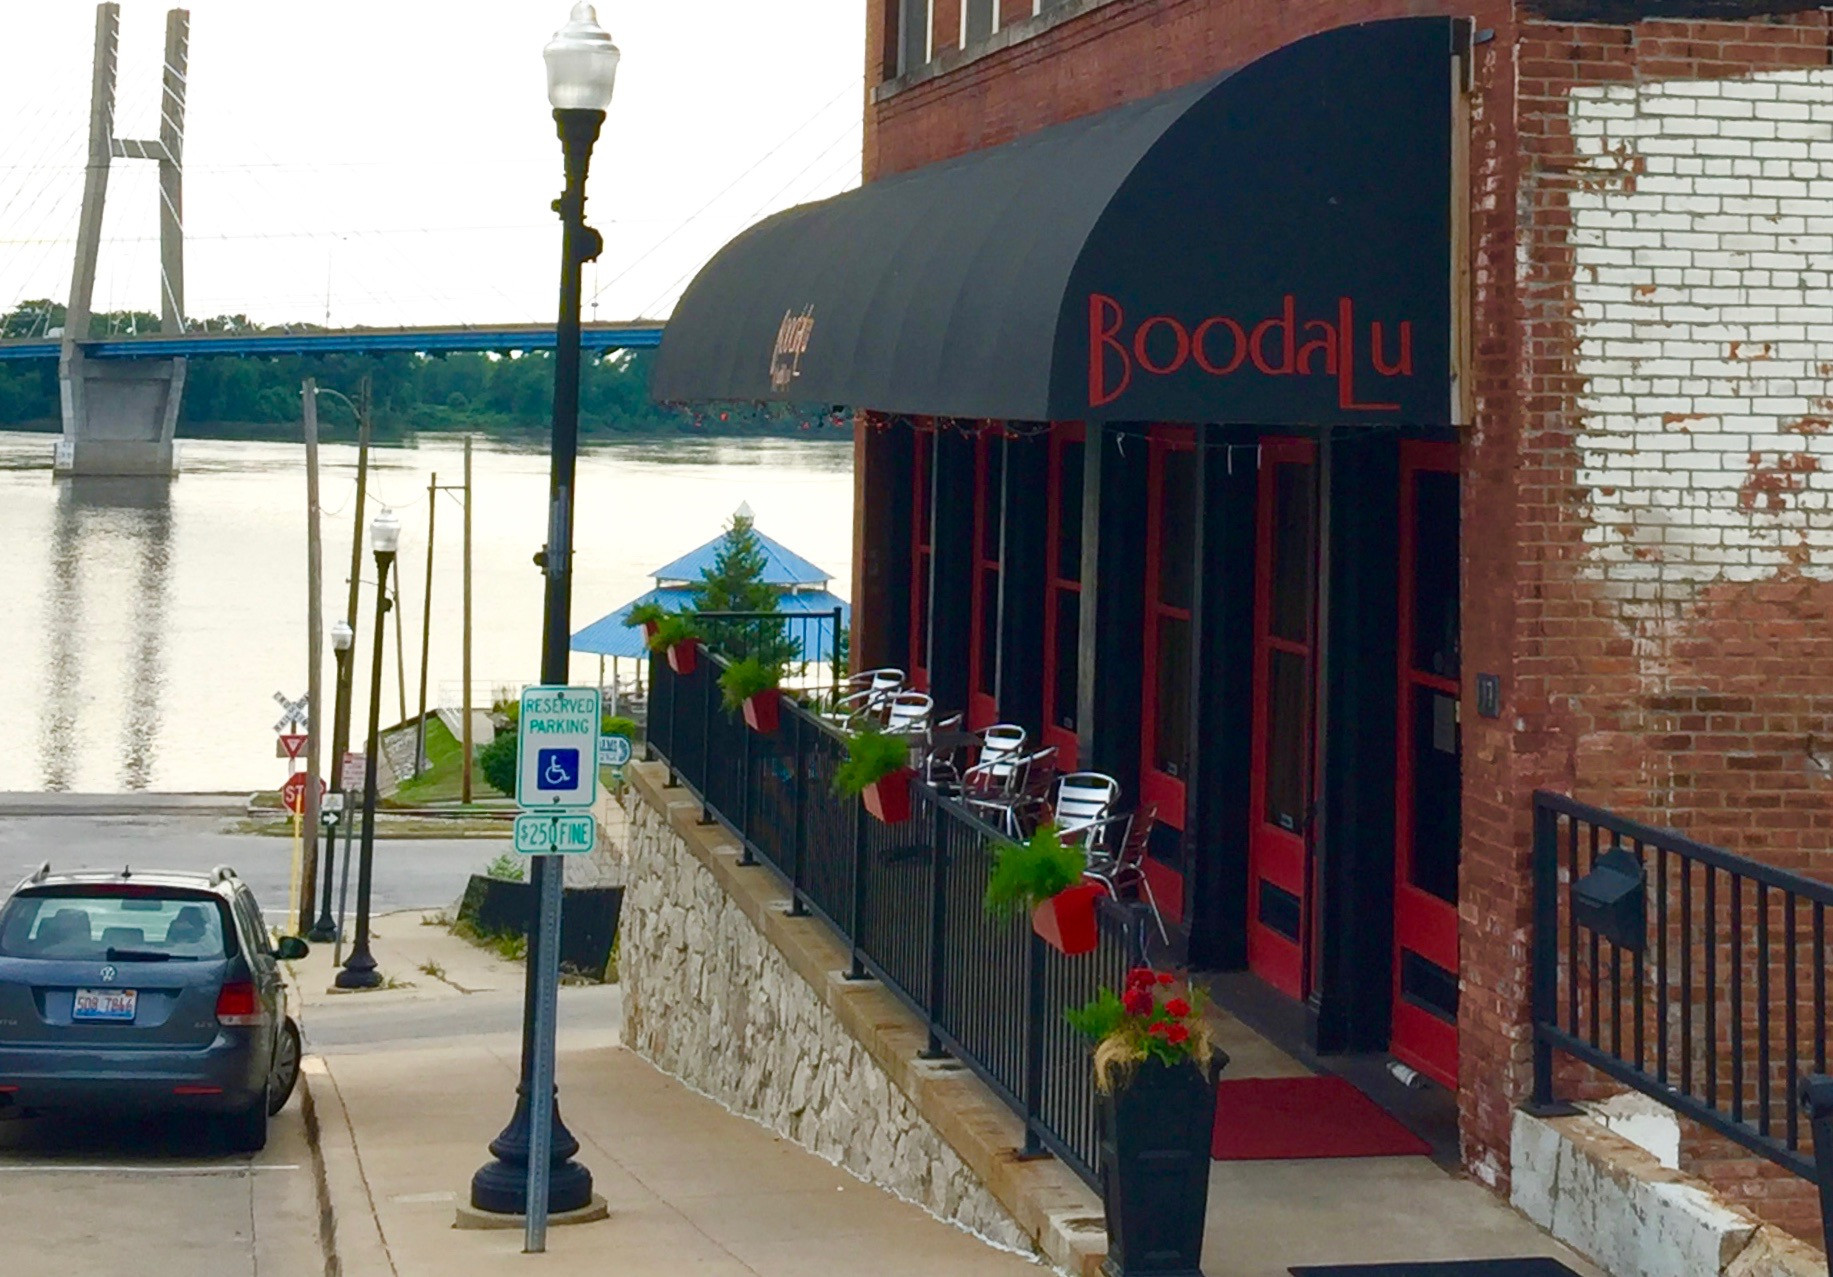 BoodaLu Steakhouse